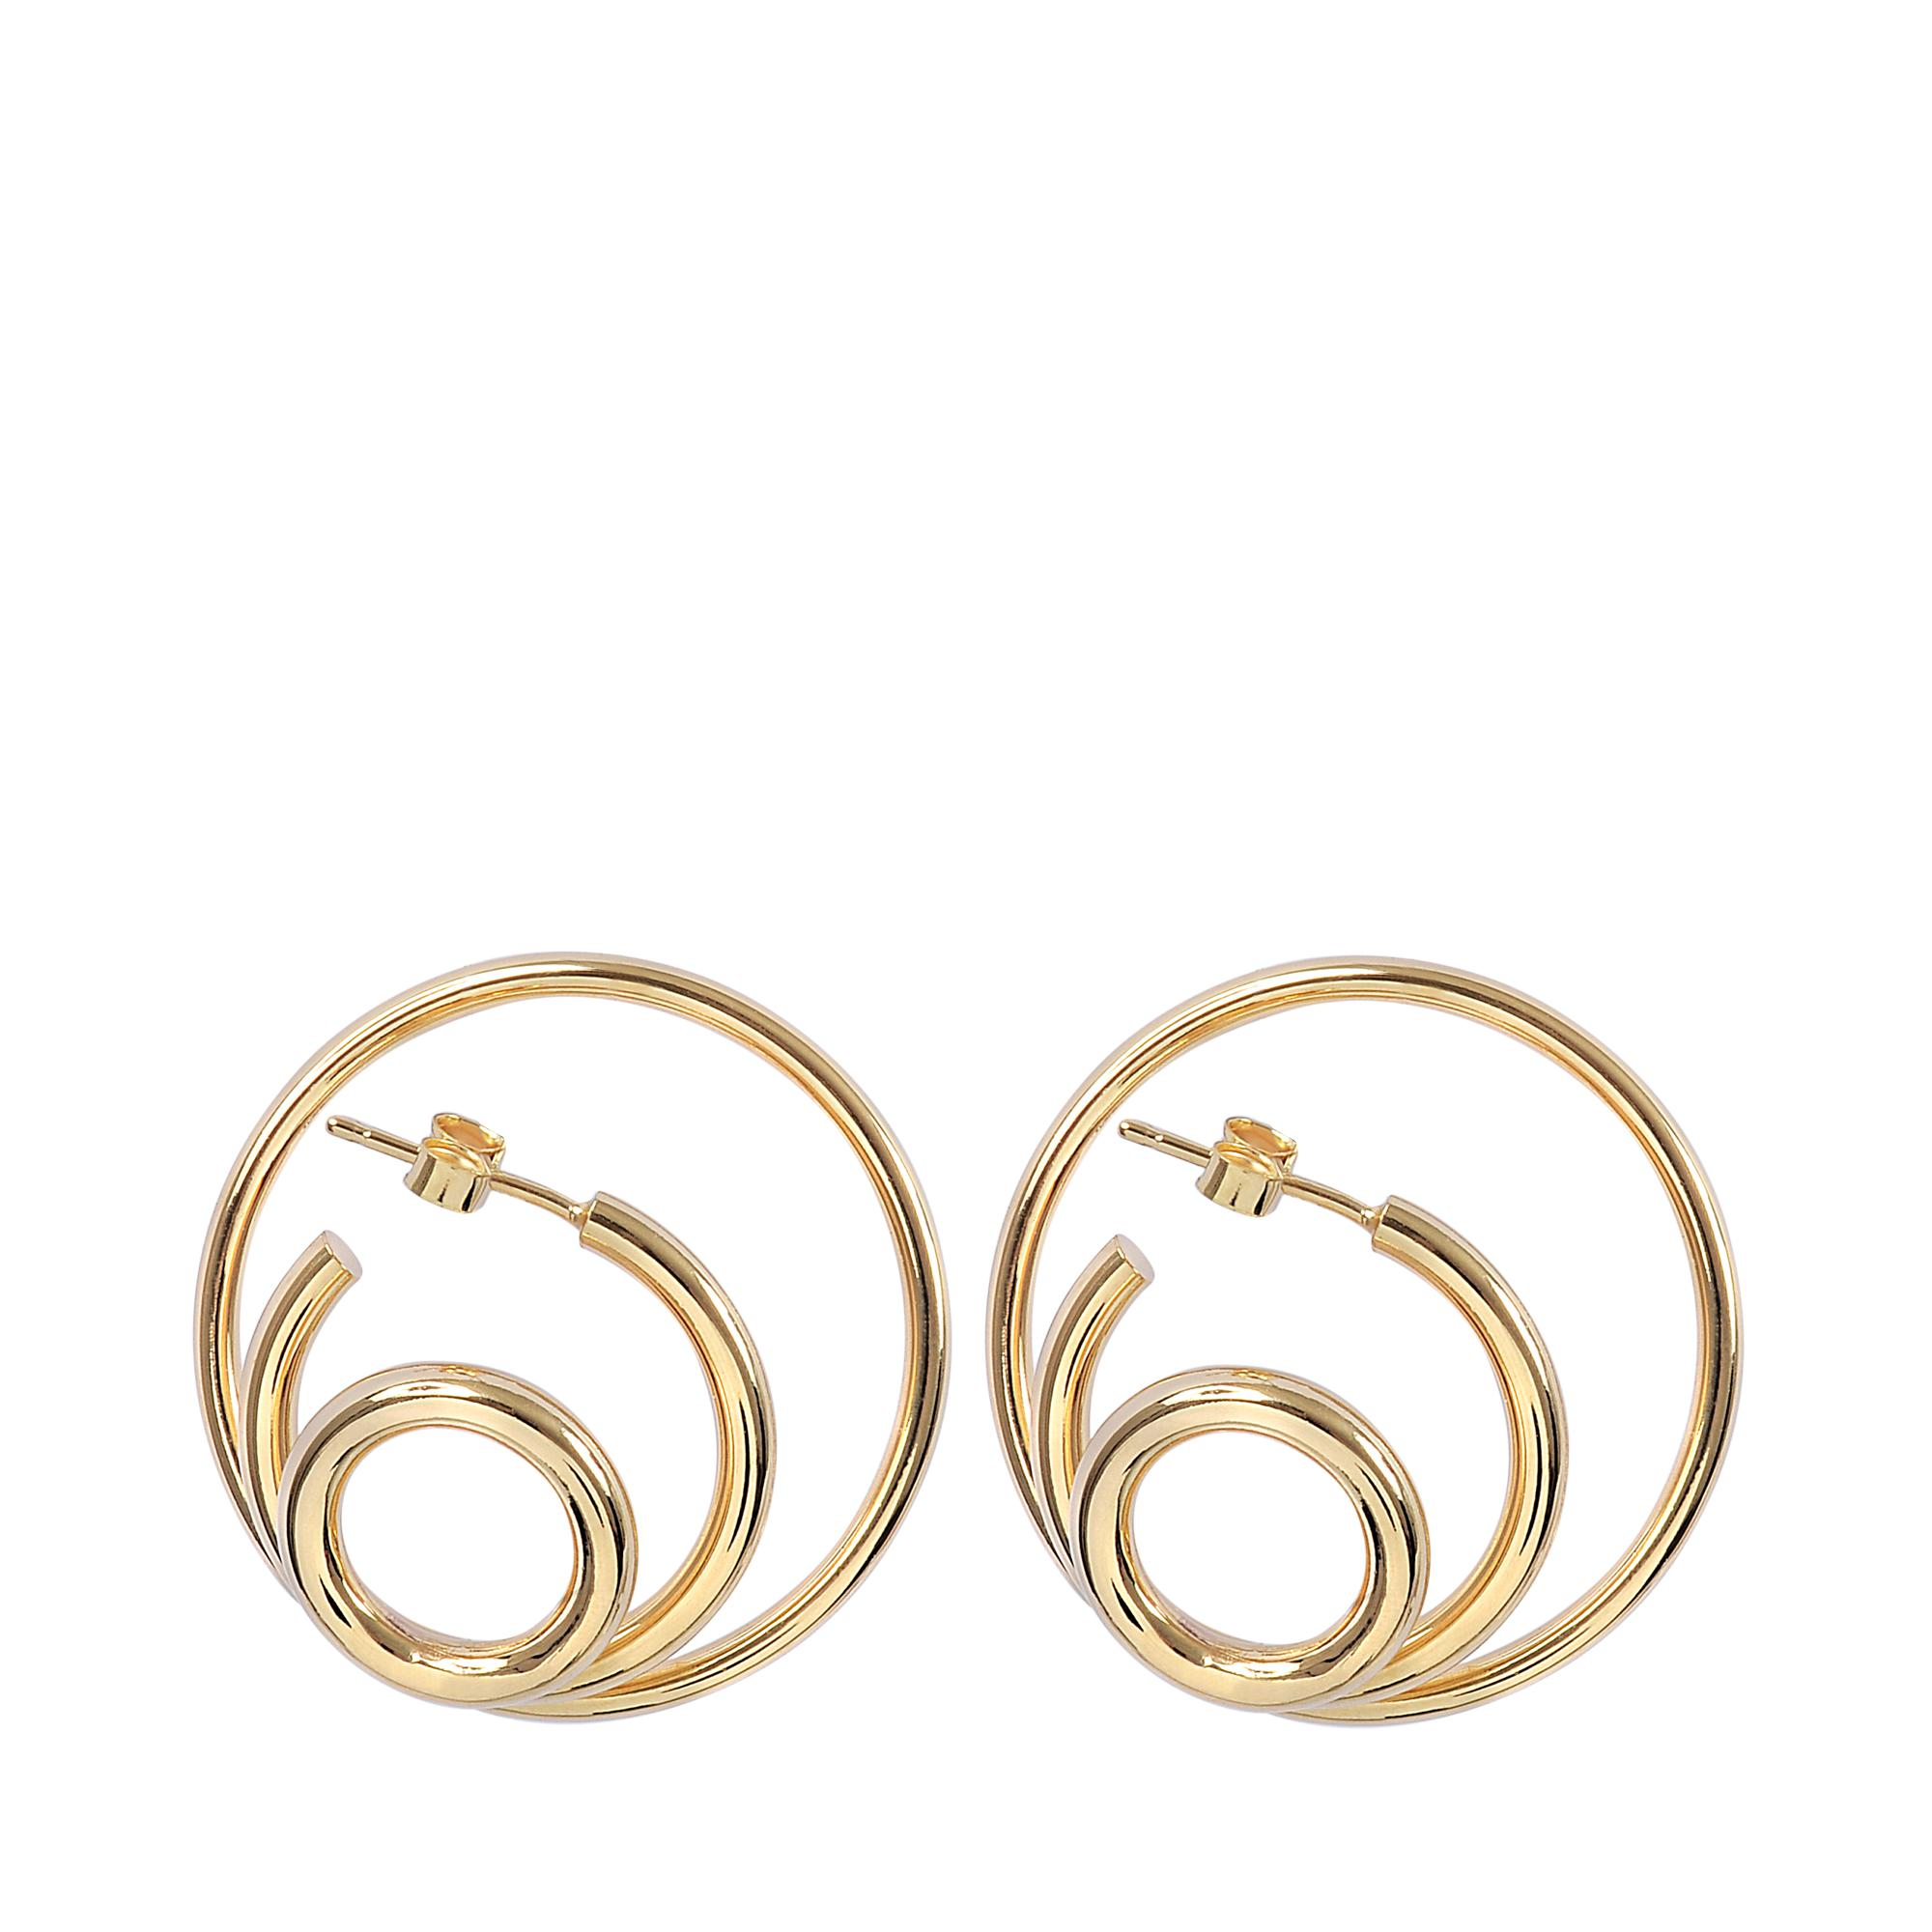 Charlotte Chesnais Ricoché M Earrings in Yellow Vermeil 4dwp8k